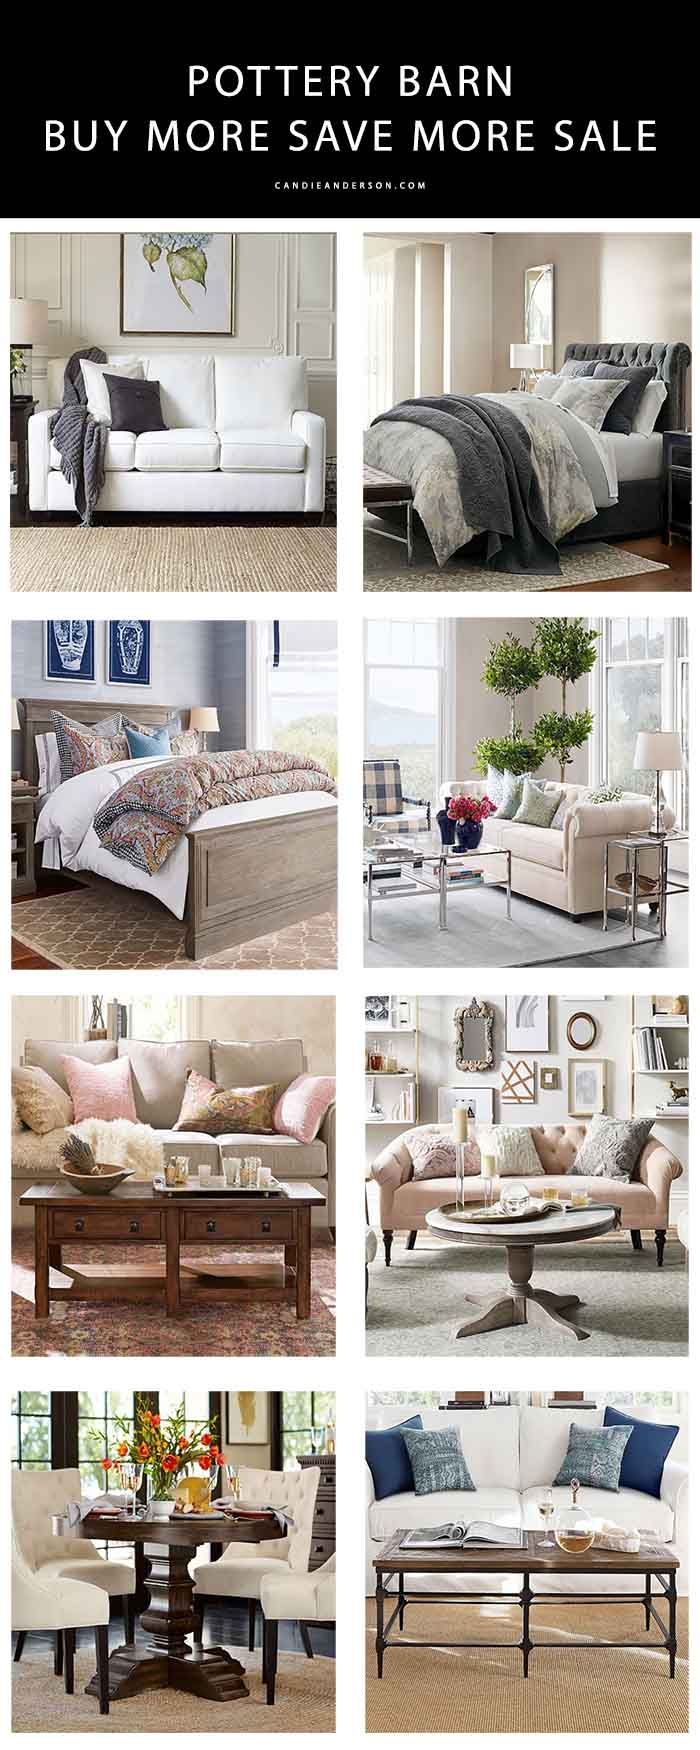 surprising Pottery Barn Savemore Part - 12: 20 Pottery Barn Furniture Essentials At Up To 30% Off | Pottery barn  furniture